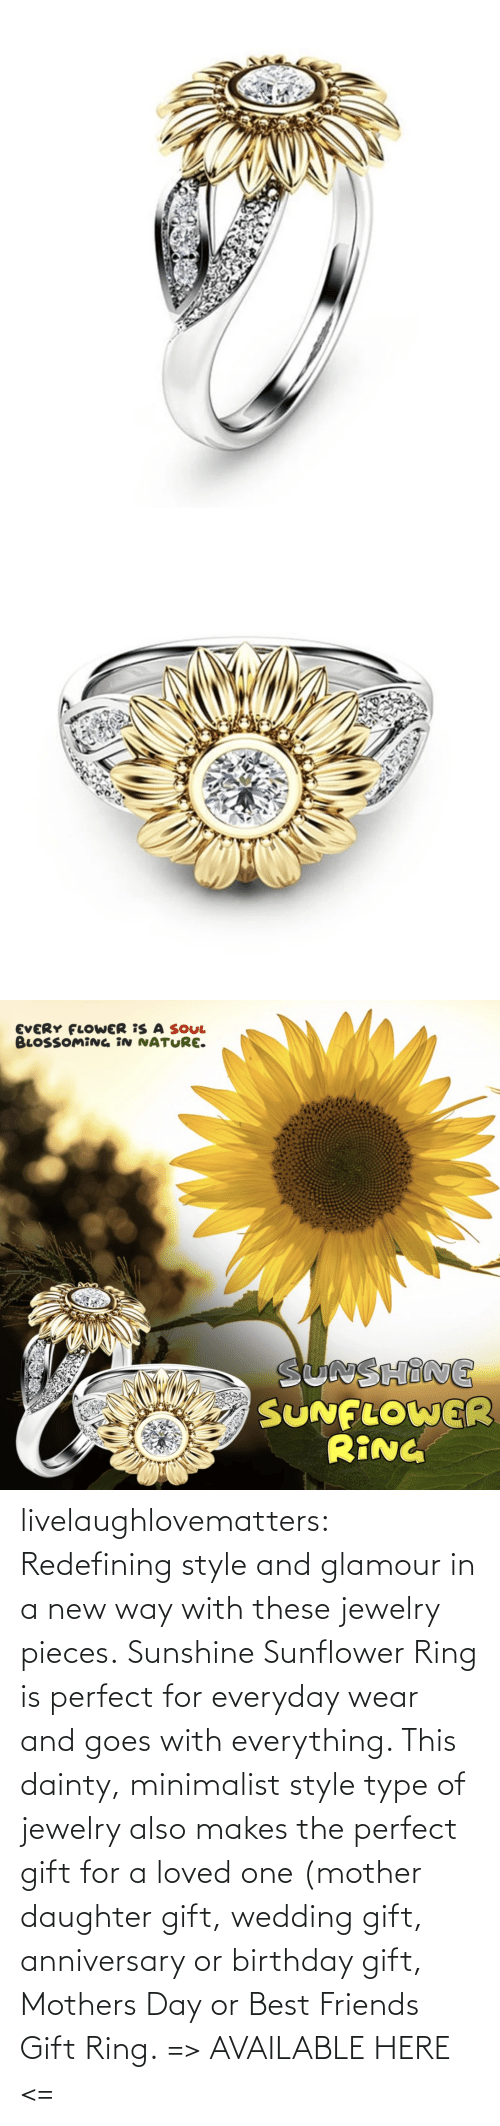 tumblr: livelaughlovematters:  Redefining style and glamour in a new way with these jewelry pieces. Sunshine Sunflower Ring is perfect for everyday wear and goes with everything. This dainty, minimalist style type of jewelry also makes the perfect gift for a loved one (mother daughter gift, wedding gift, anniversary or birthday gift, Mothers Day or Best Friends Gift Ring. => AVAILABLE HERE <=